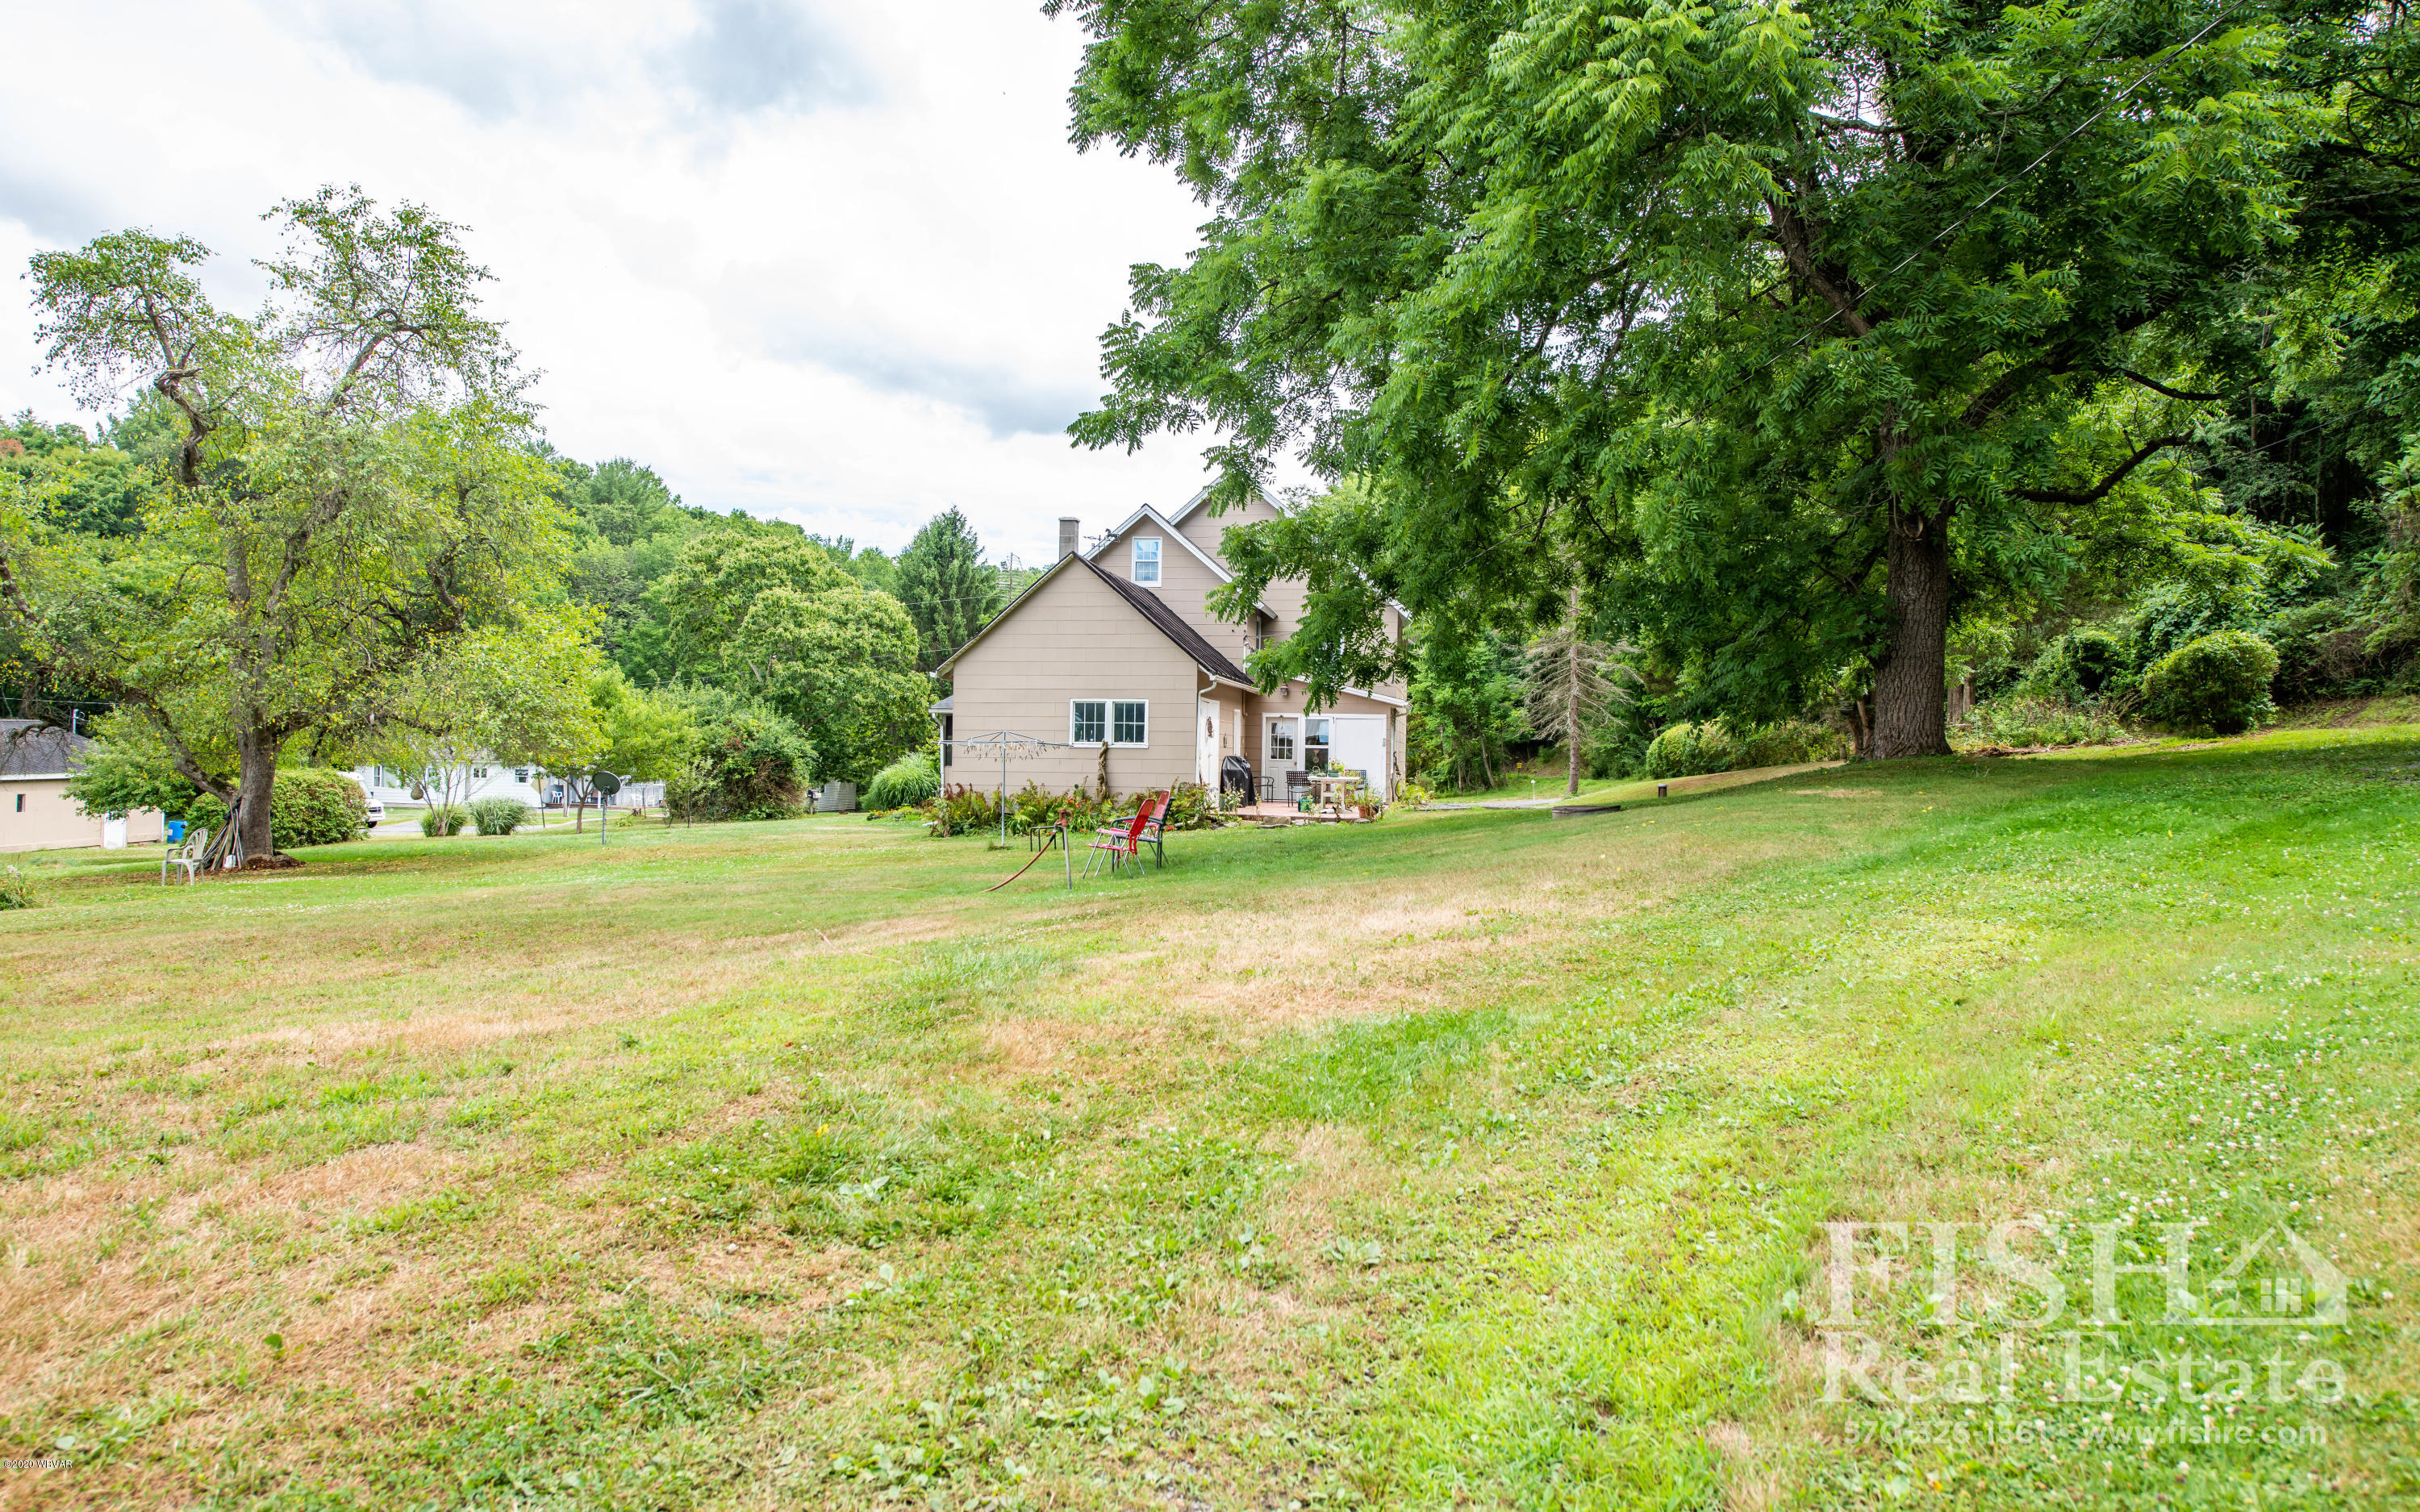 1881 BITLER HILL ROAD, Muncy, PA 17756, 5 Bedrooms Bedrooms, ,1 BathroomBathrooms,Farm,For sale,BITLER HILL,WB-90757